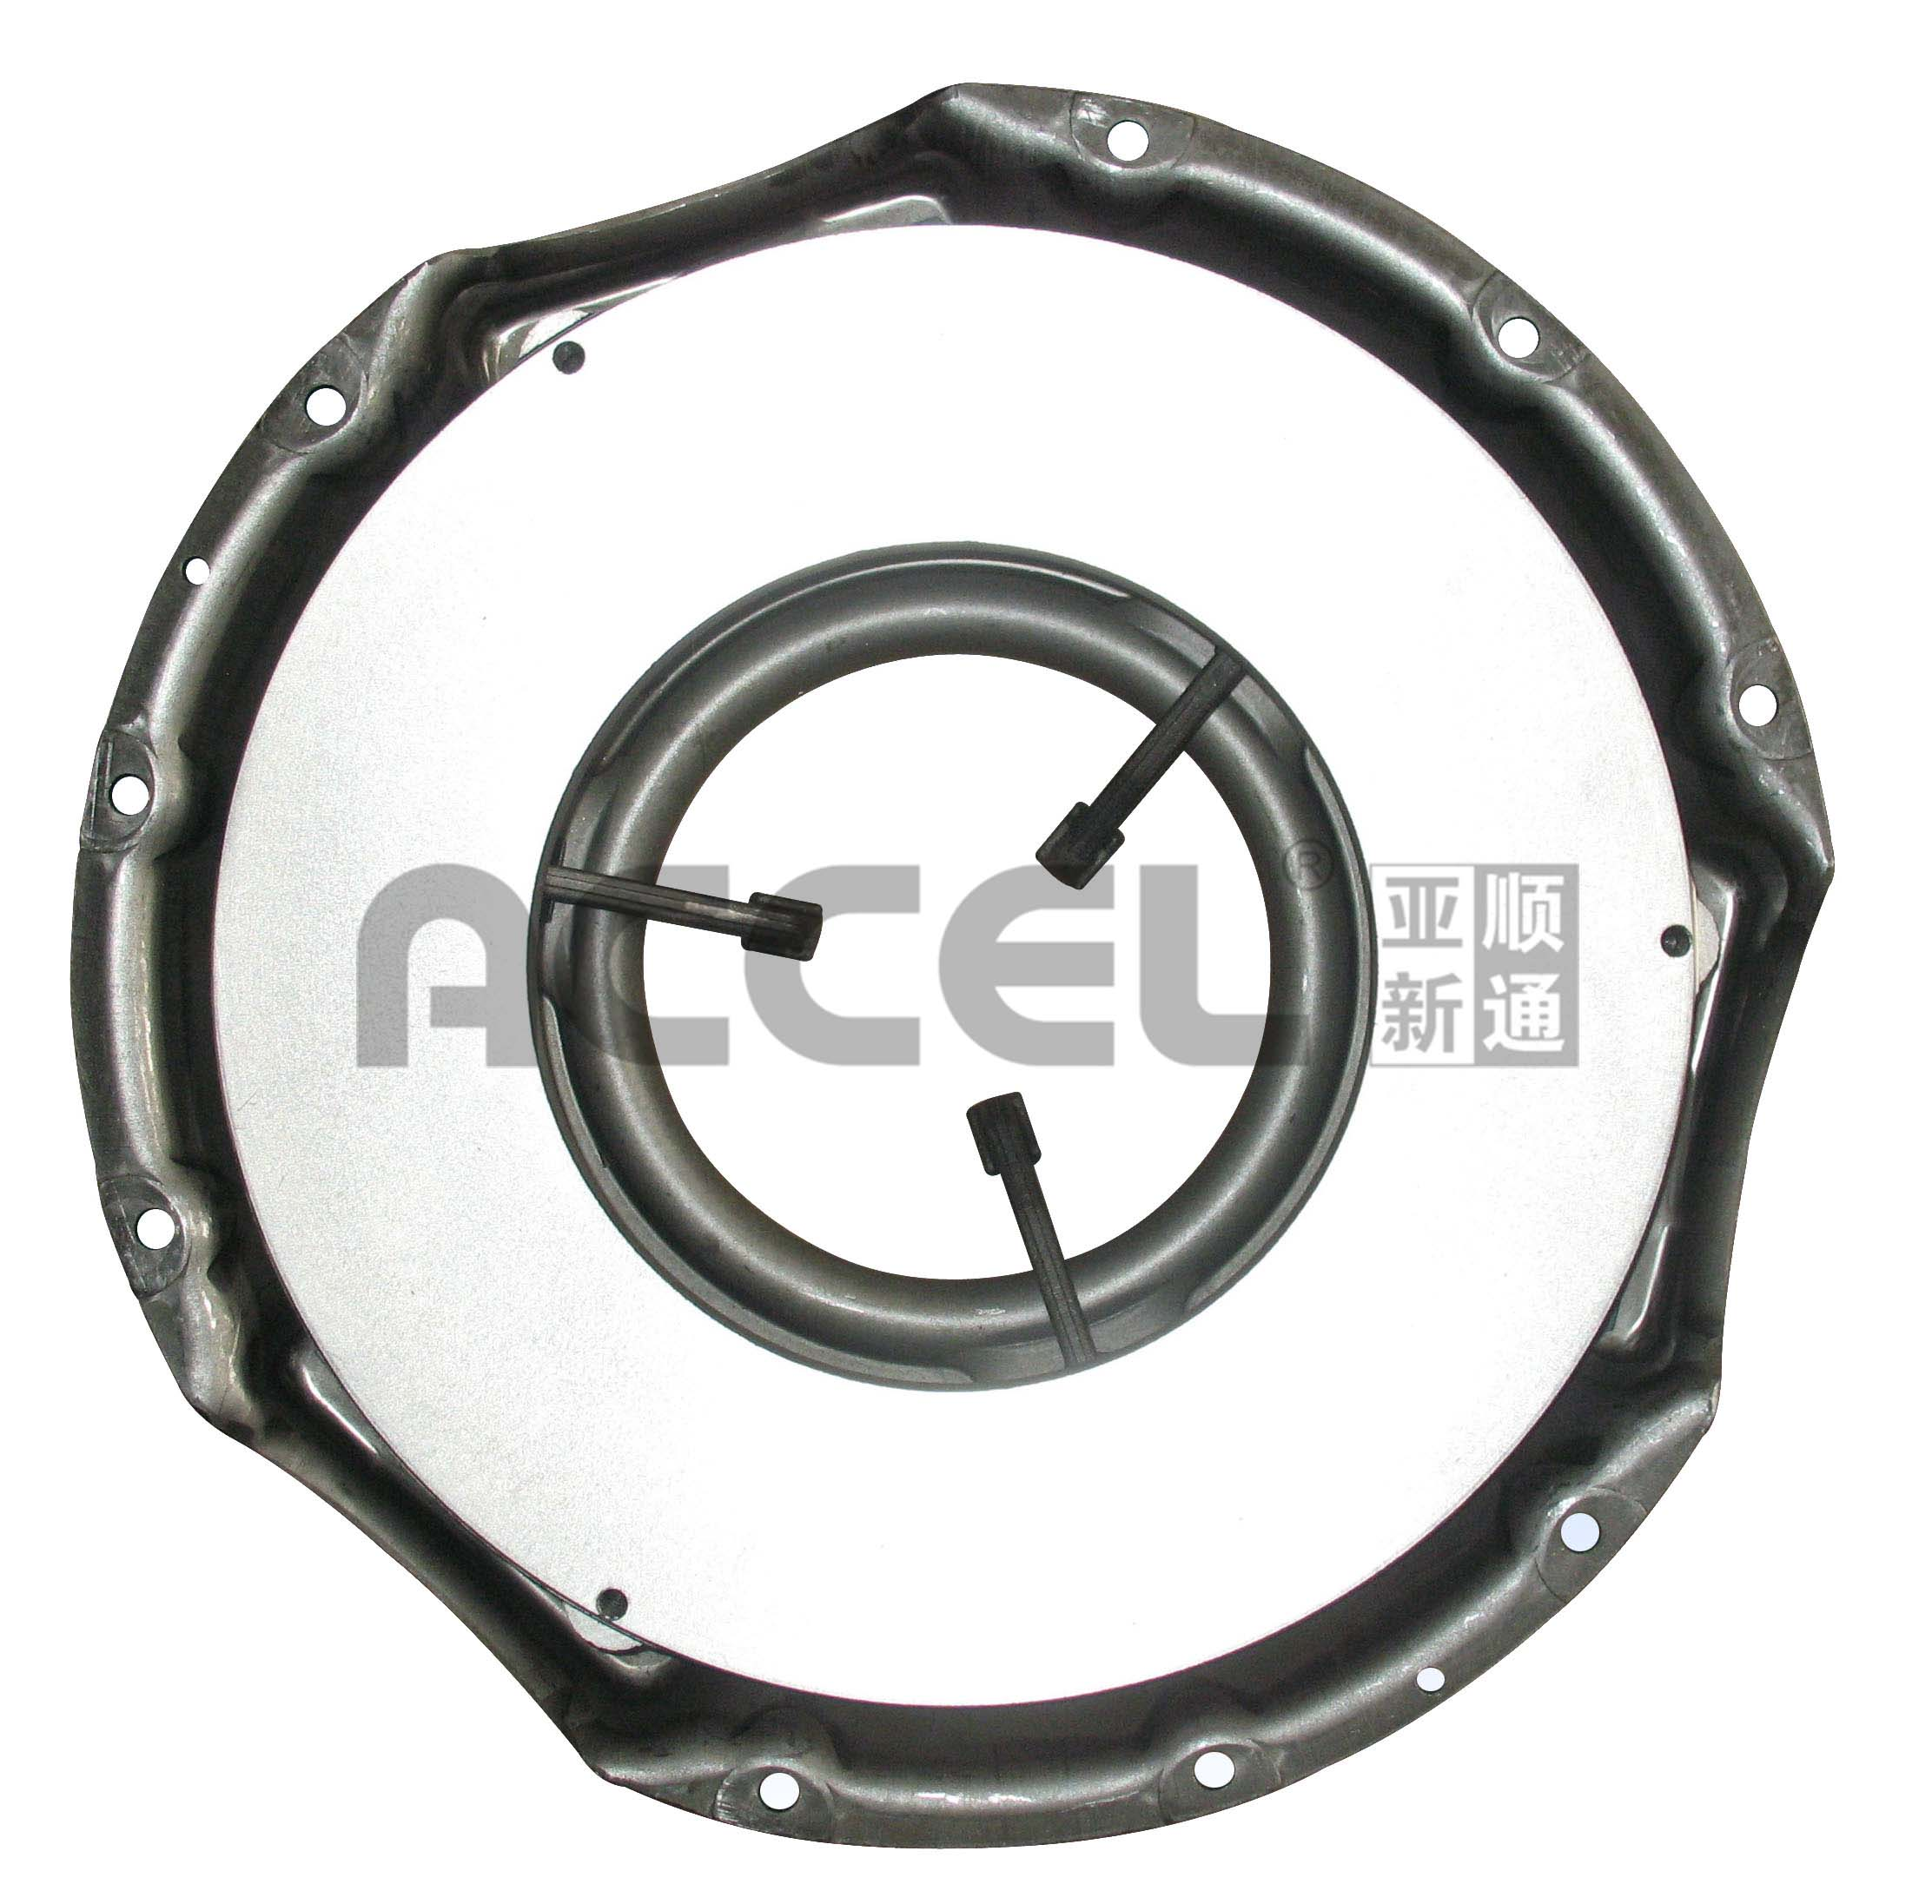 Clutch Cover/OE:30210-90361/325*185*370.5/CND-010/NISSAN DIESE L/LY397